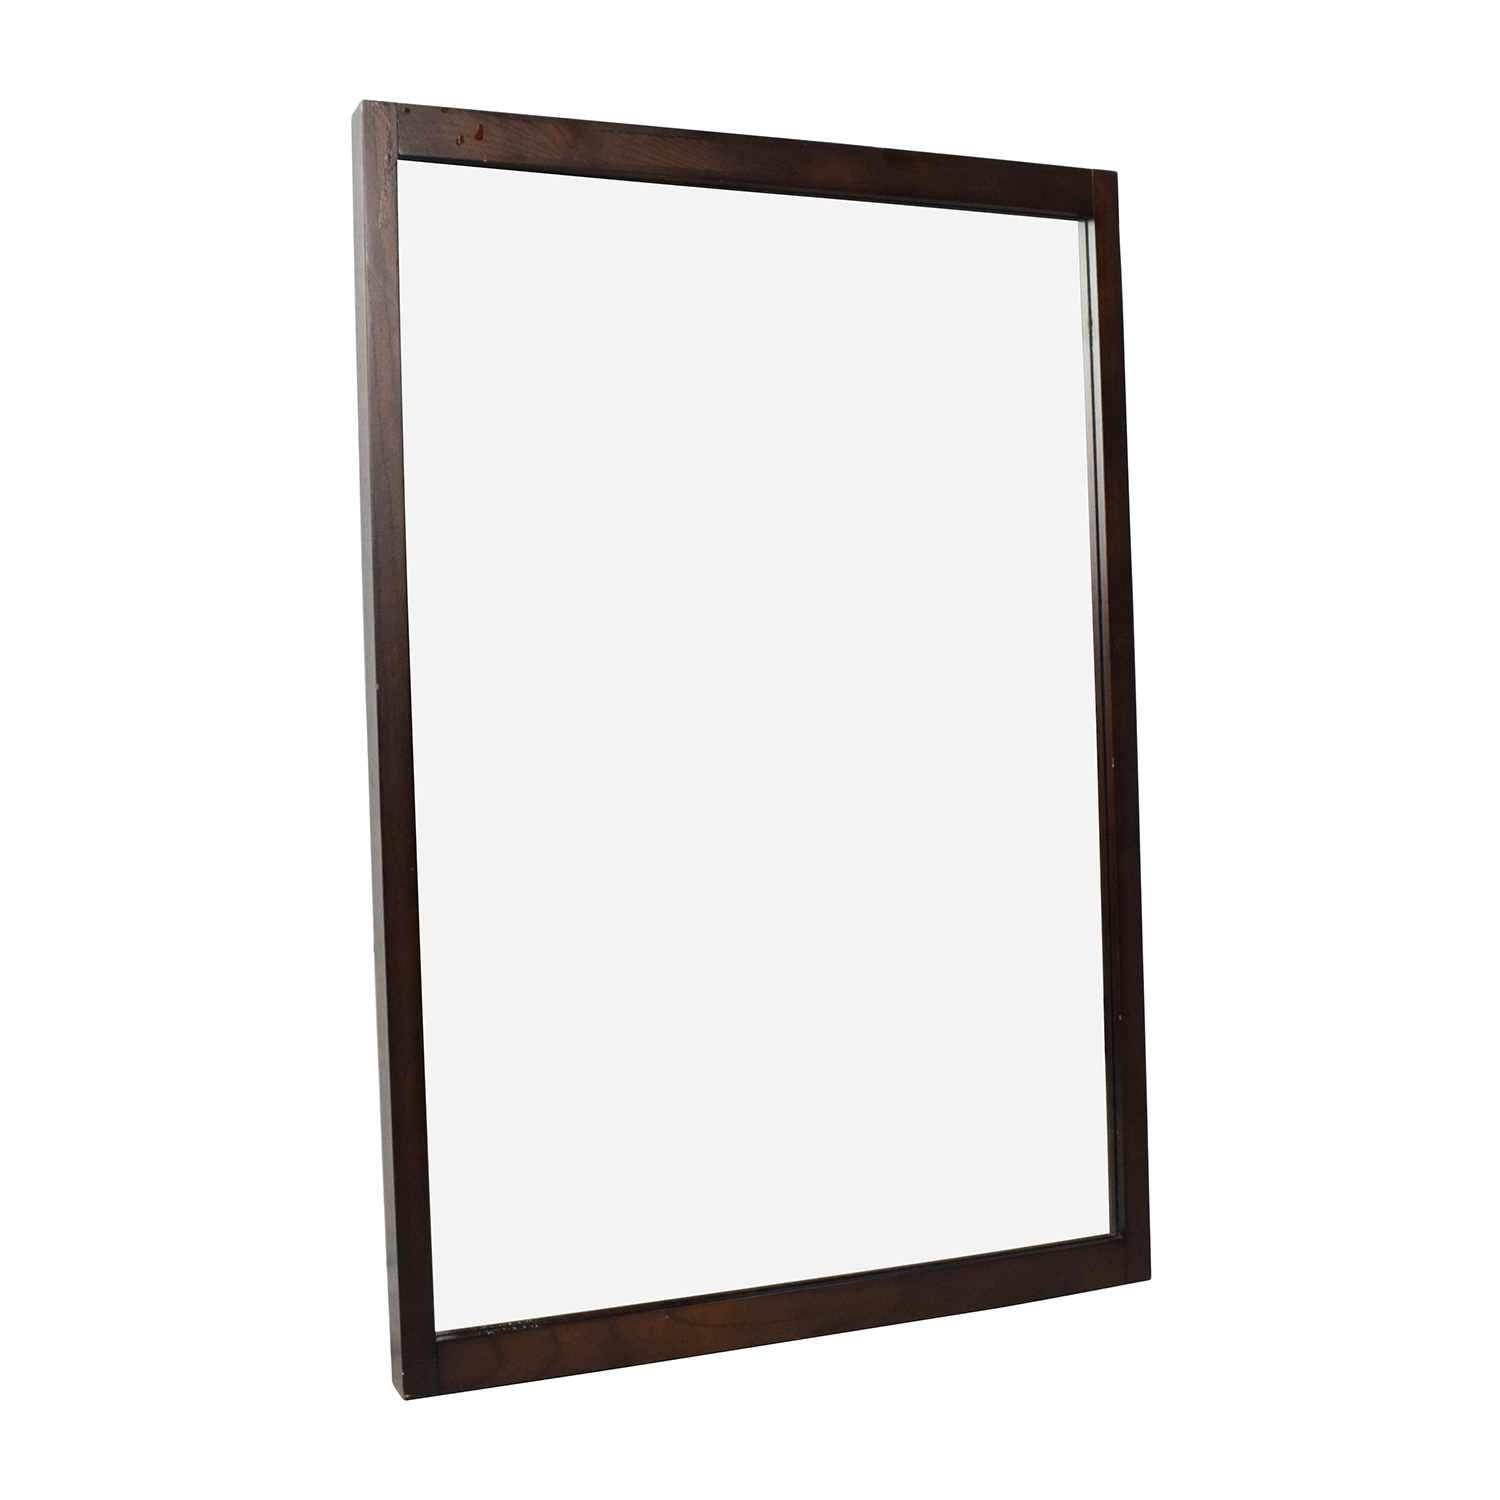 shop Pottery Barn Pottery Barn Wood Framed Mirror online